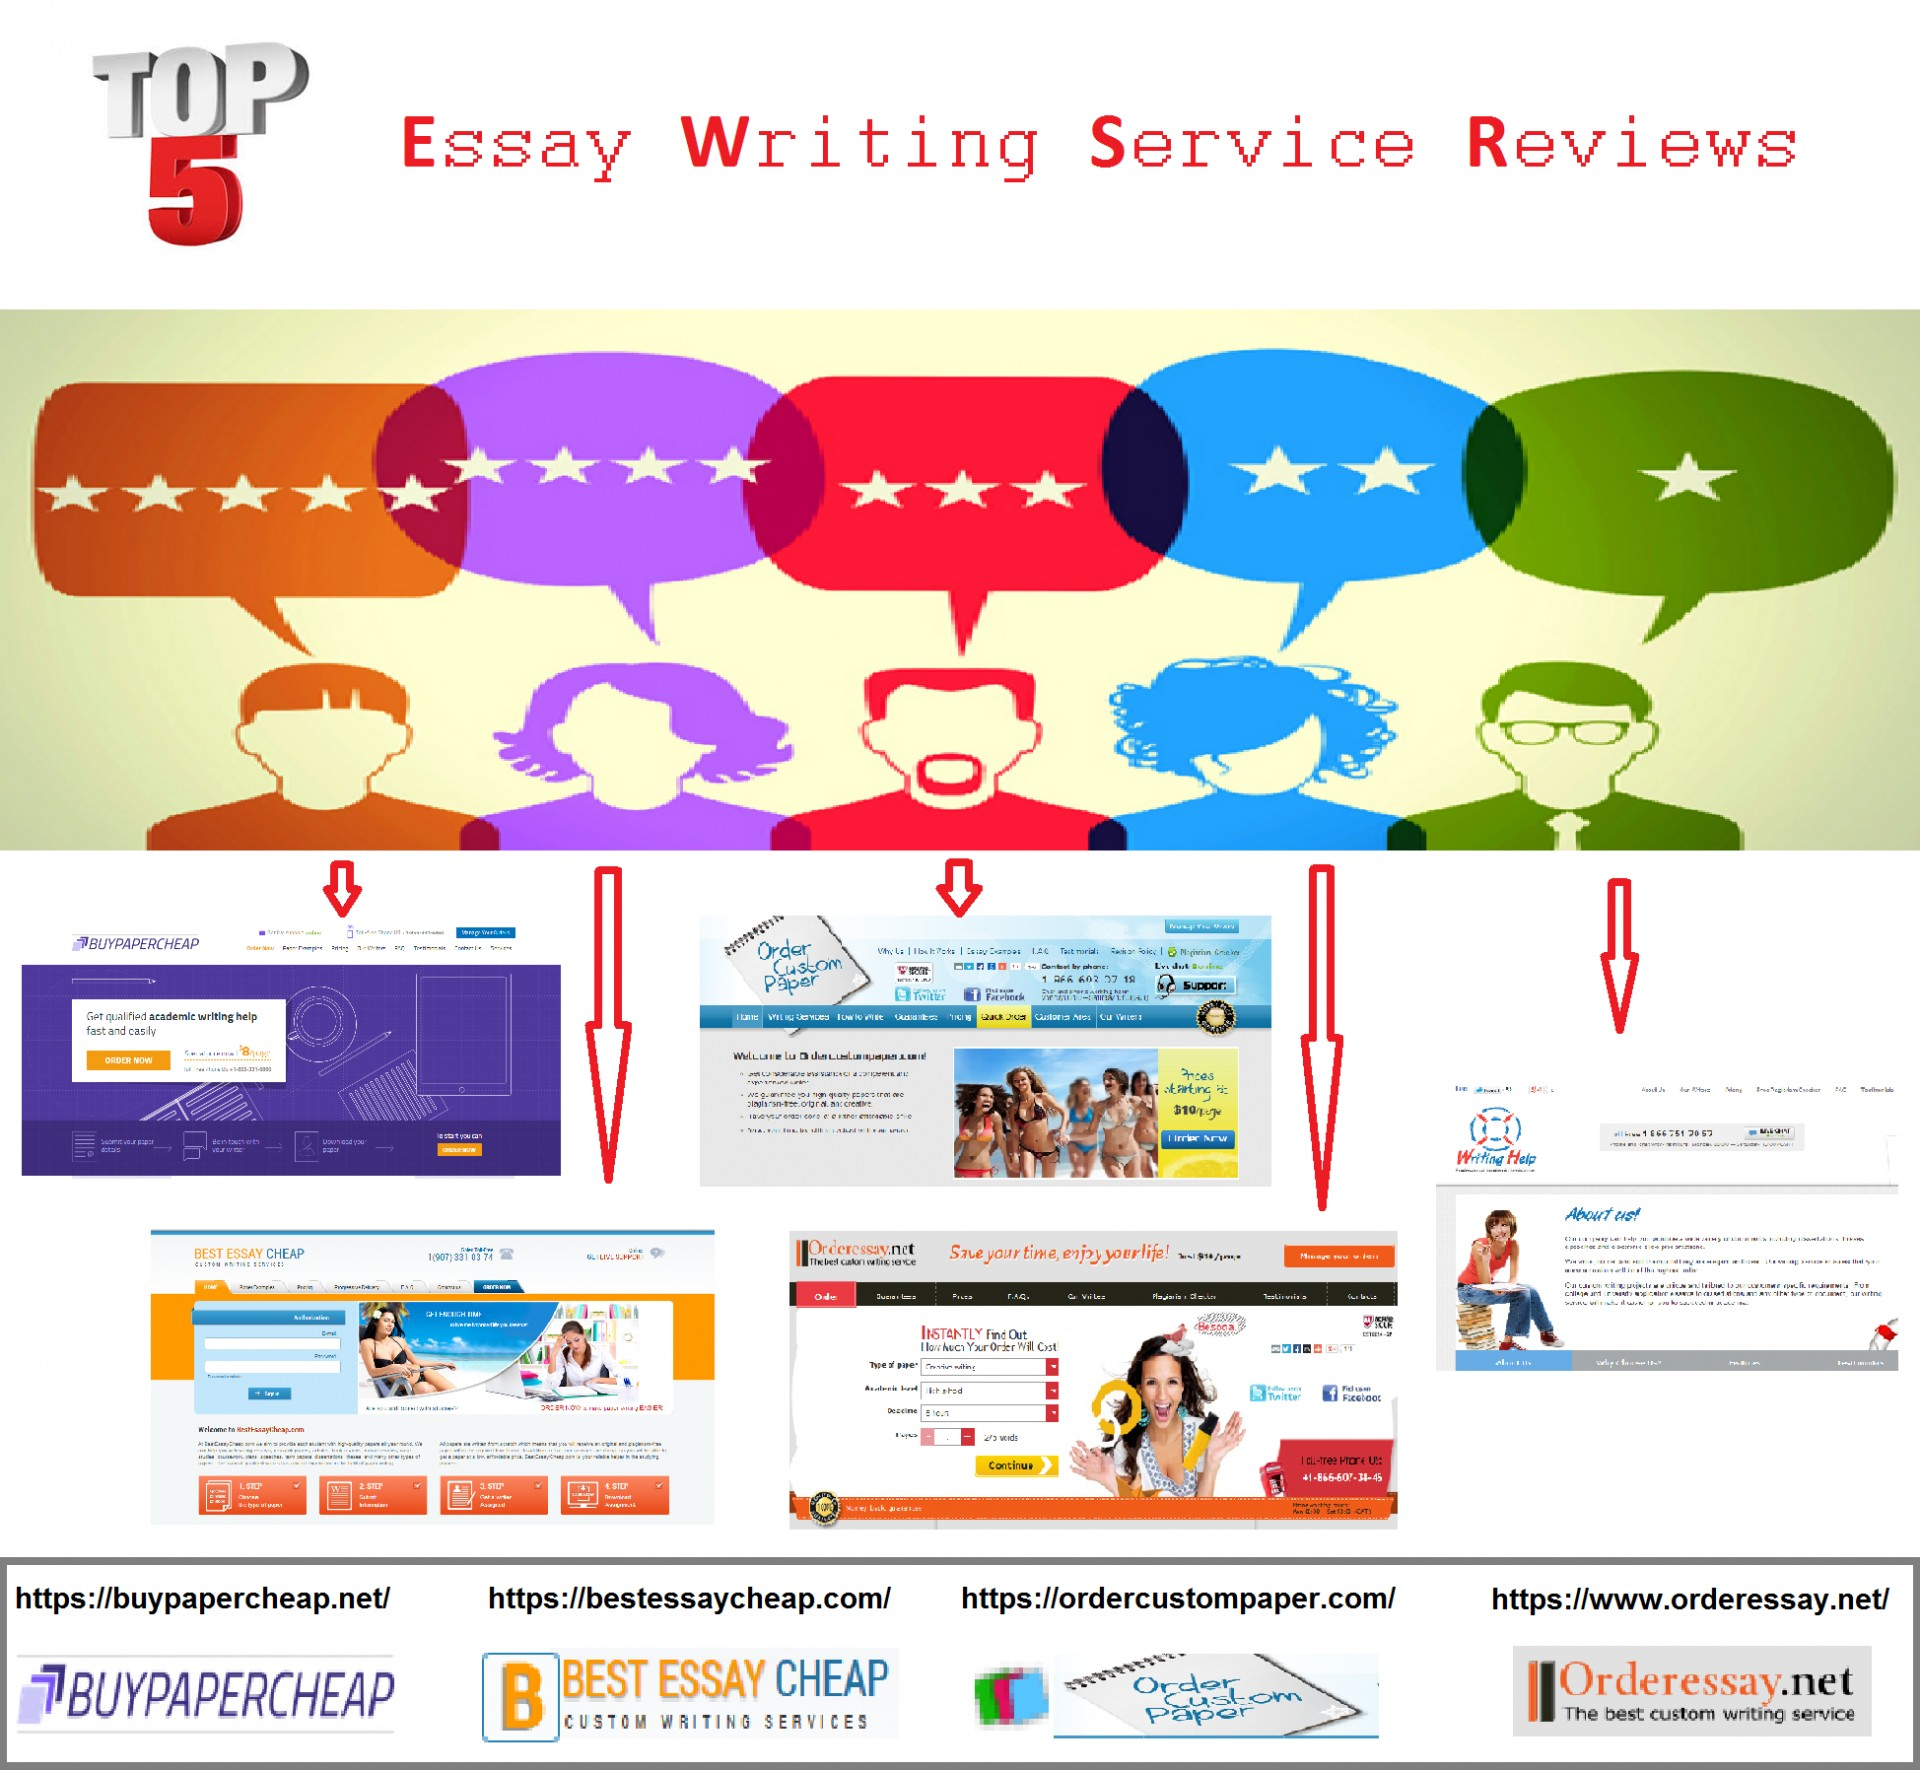 001 Essay Writing Service Reviews Custom Services From Best Essays Paper Sites Company Ideas Of Sale Discount Br Singular Australia Pro 1920